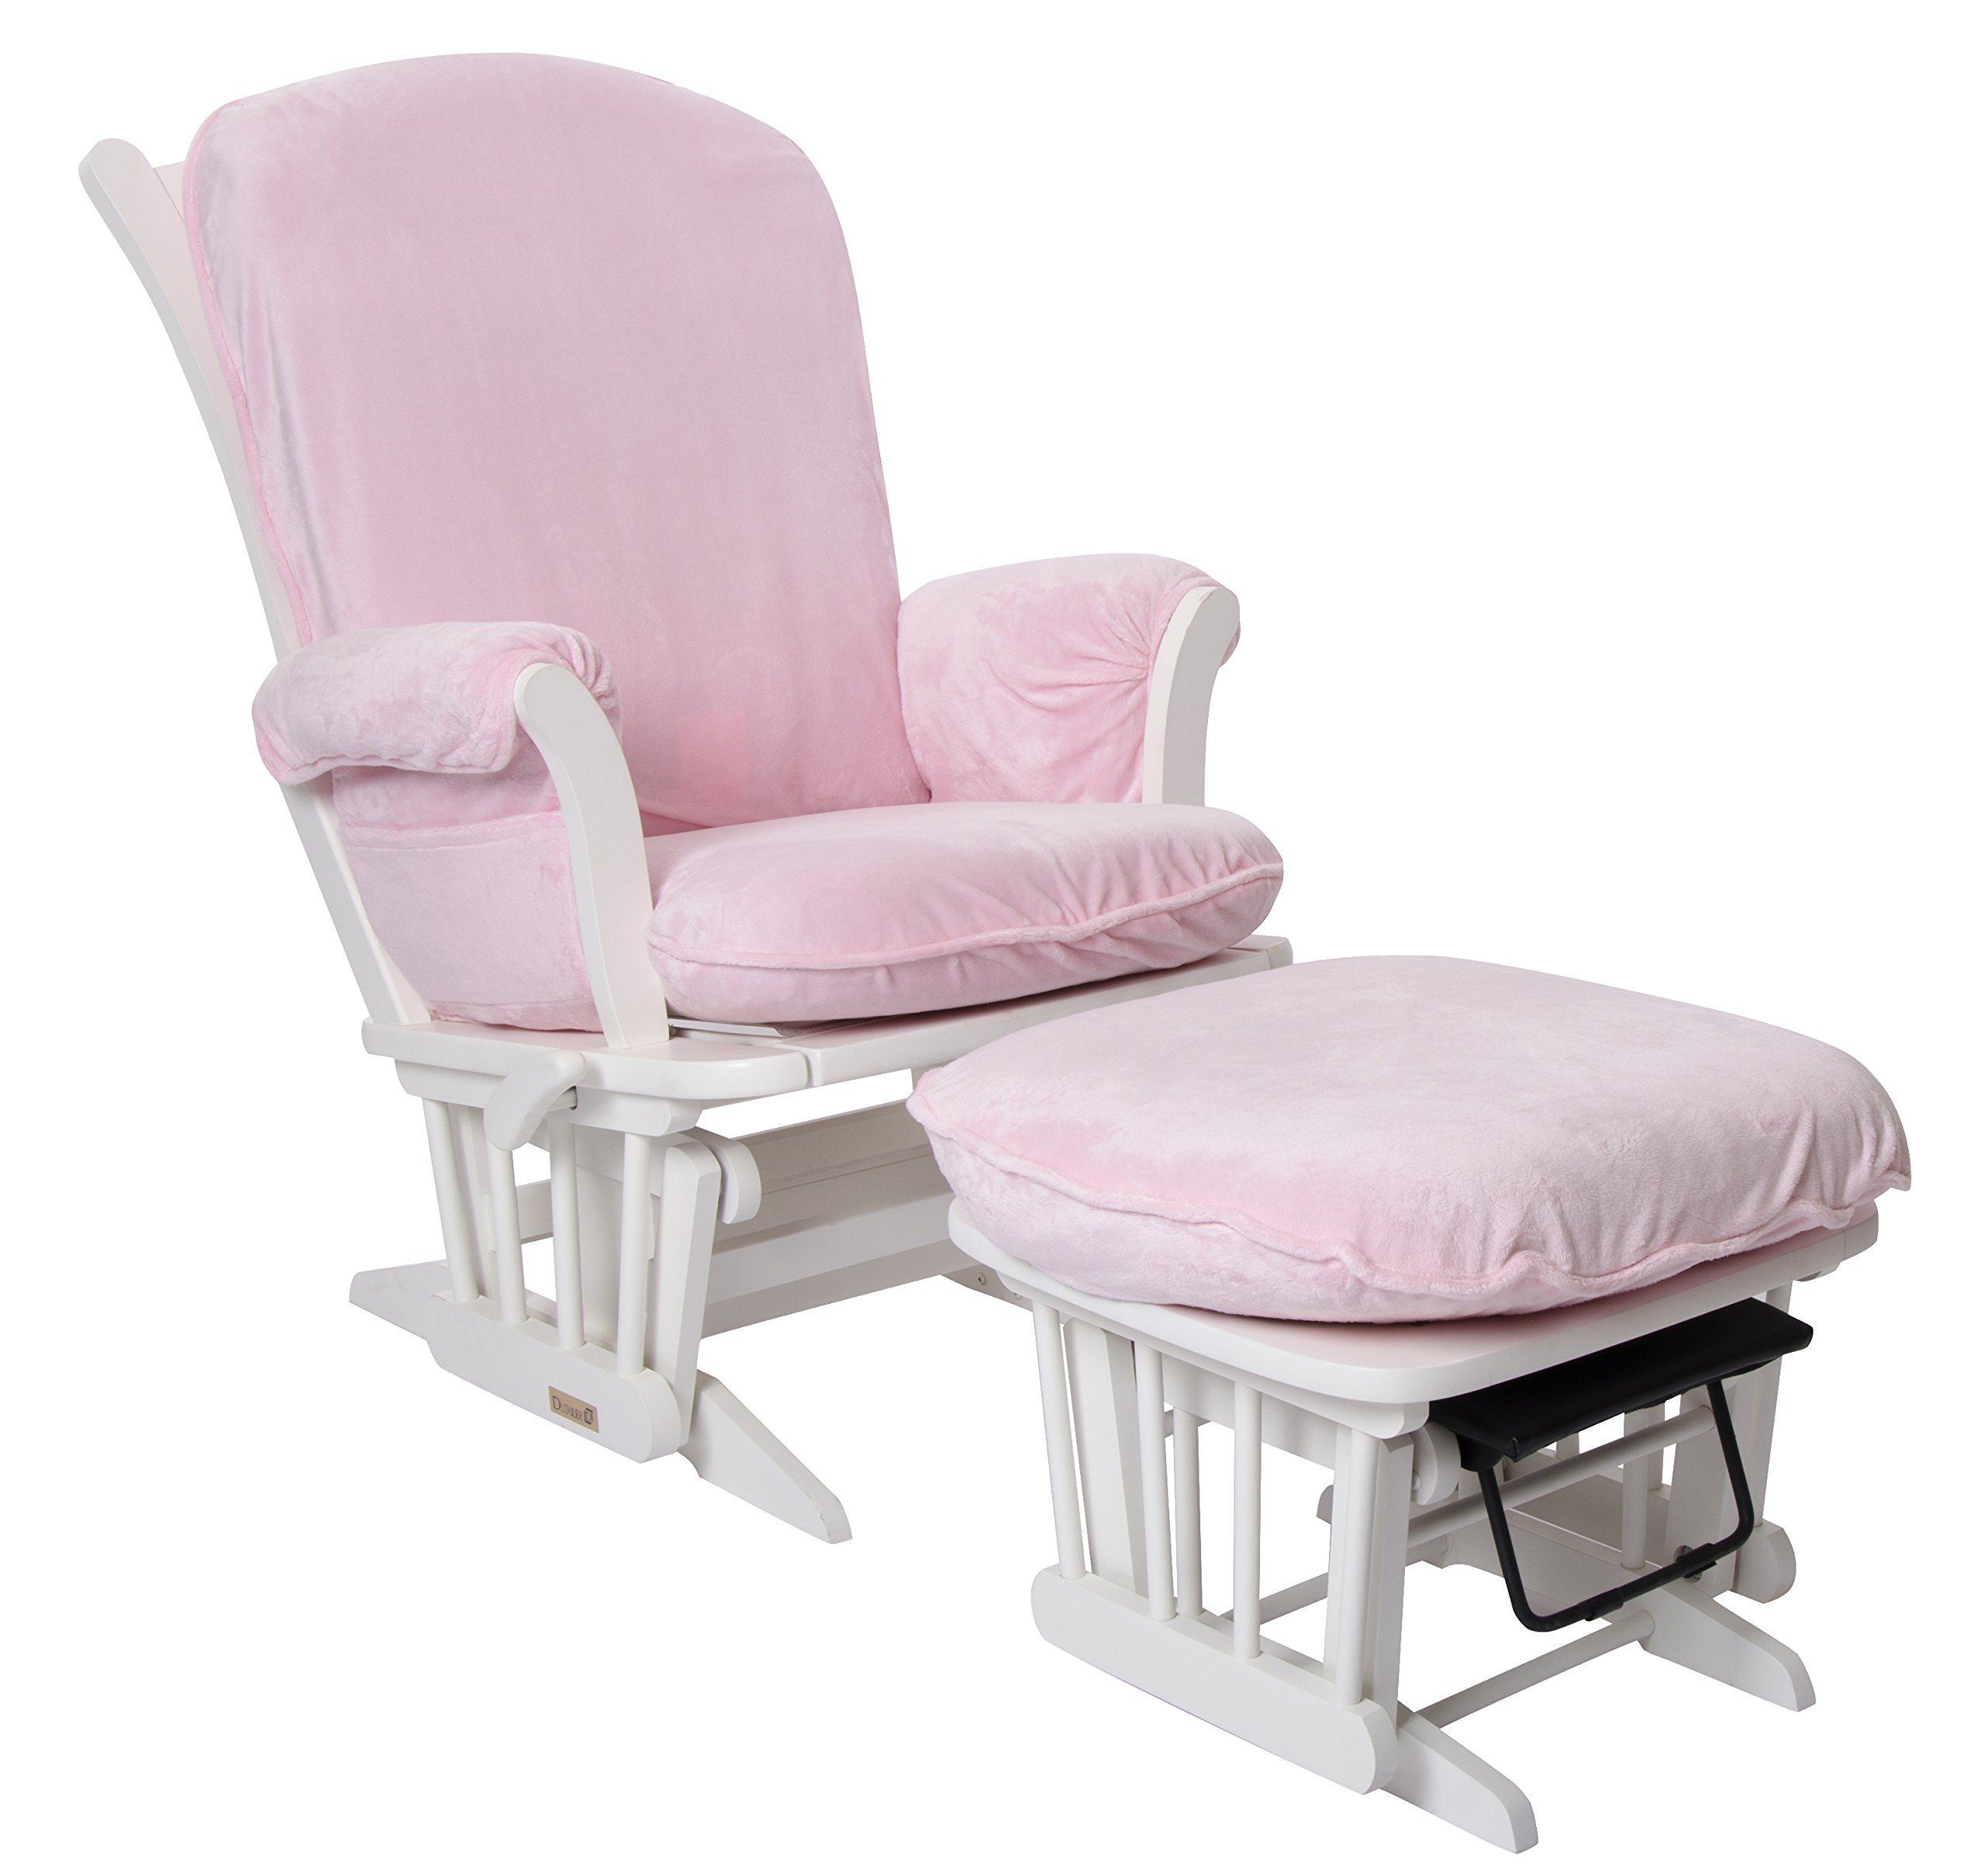 Luxe Basics Cover Me Glider Chair Cover (Chair NOT included), Pink